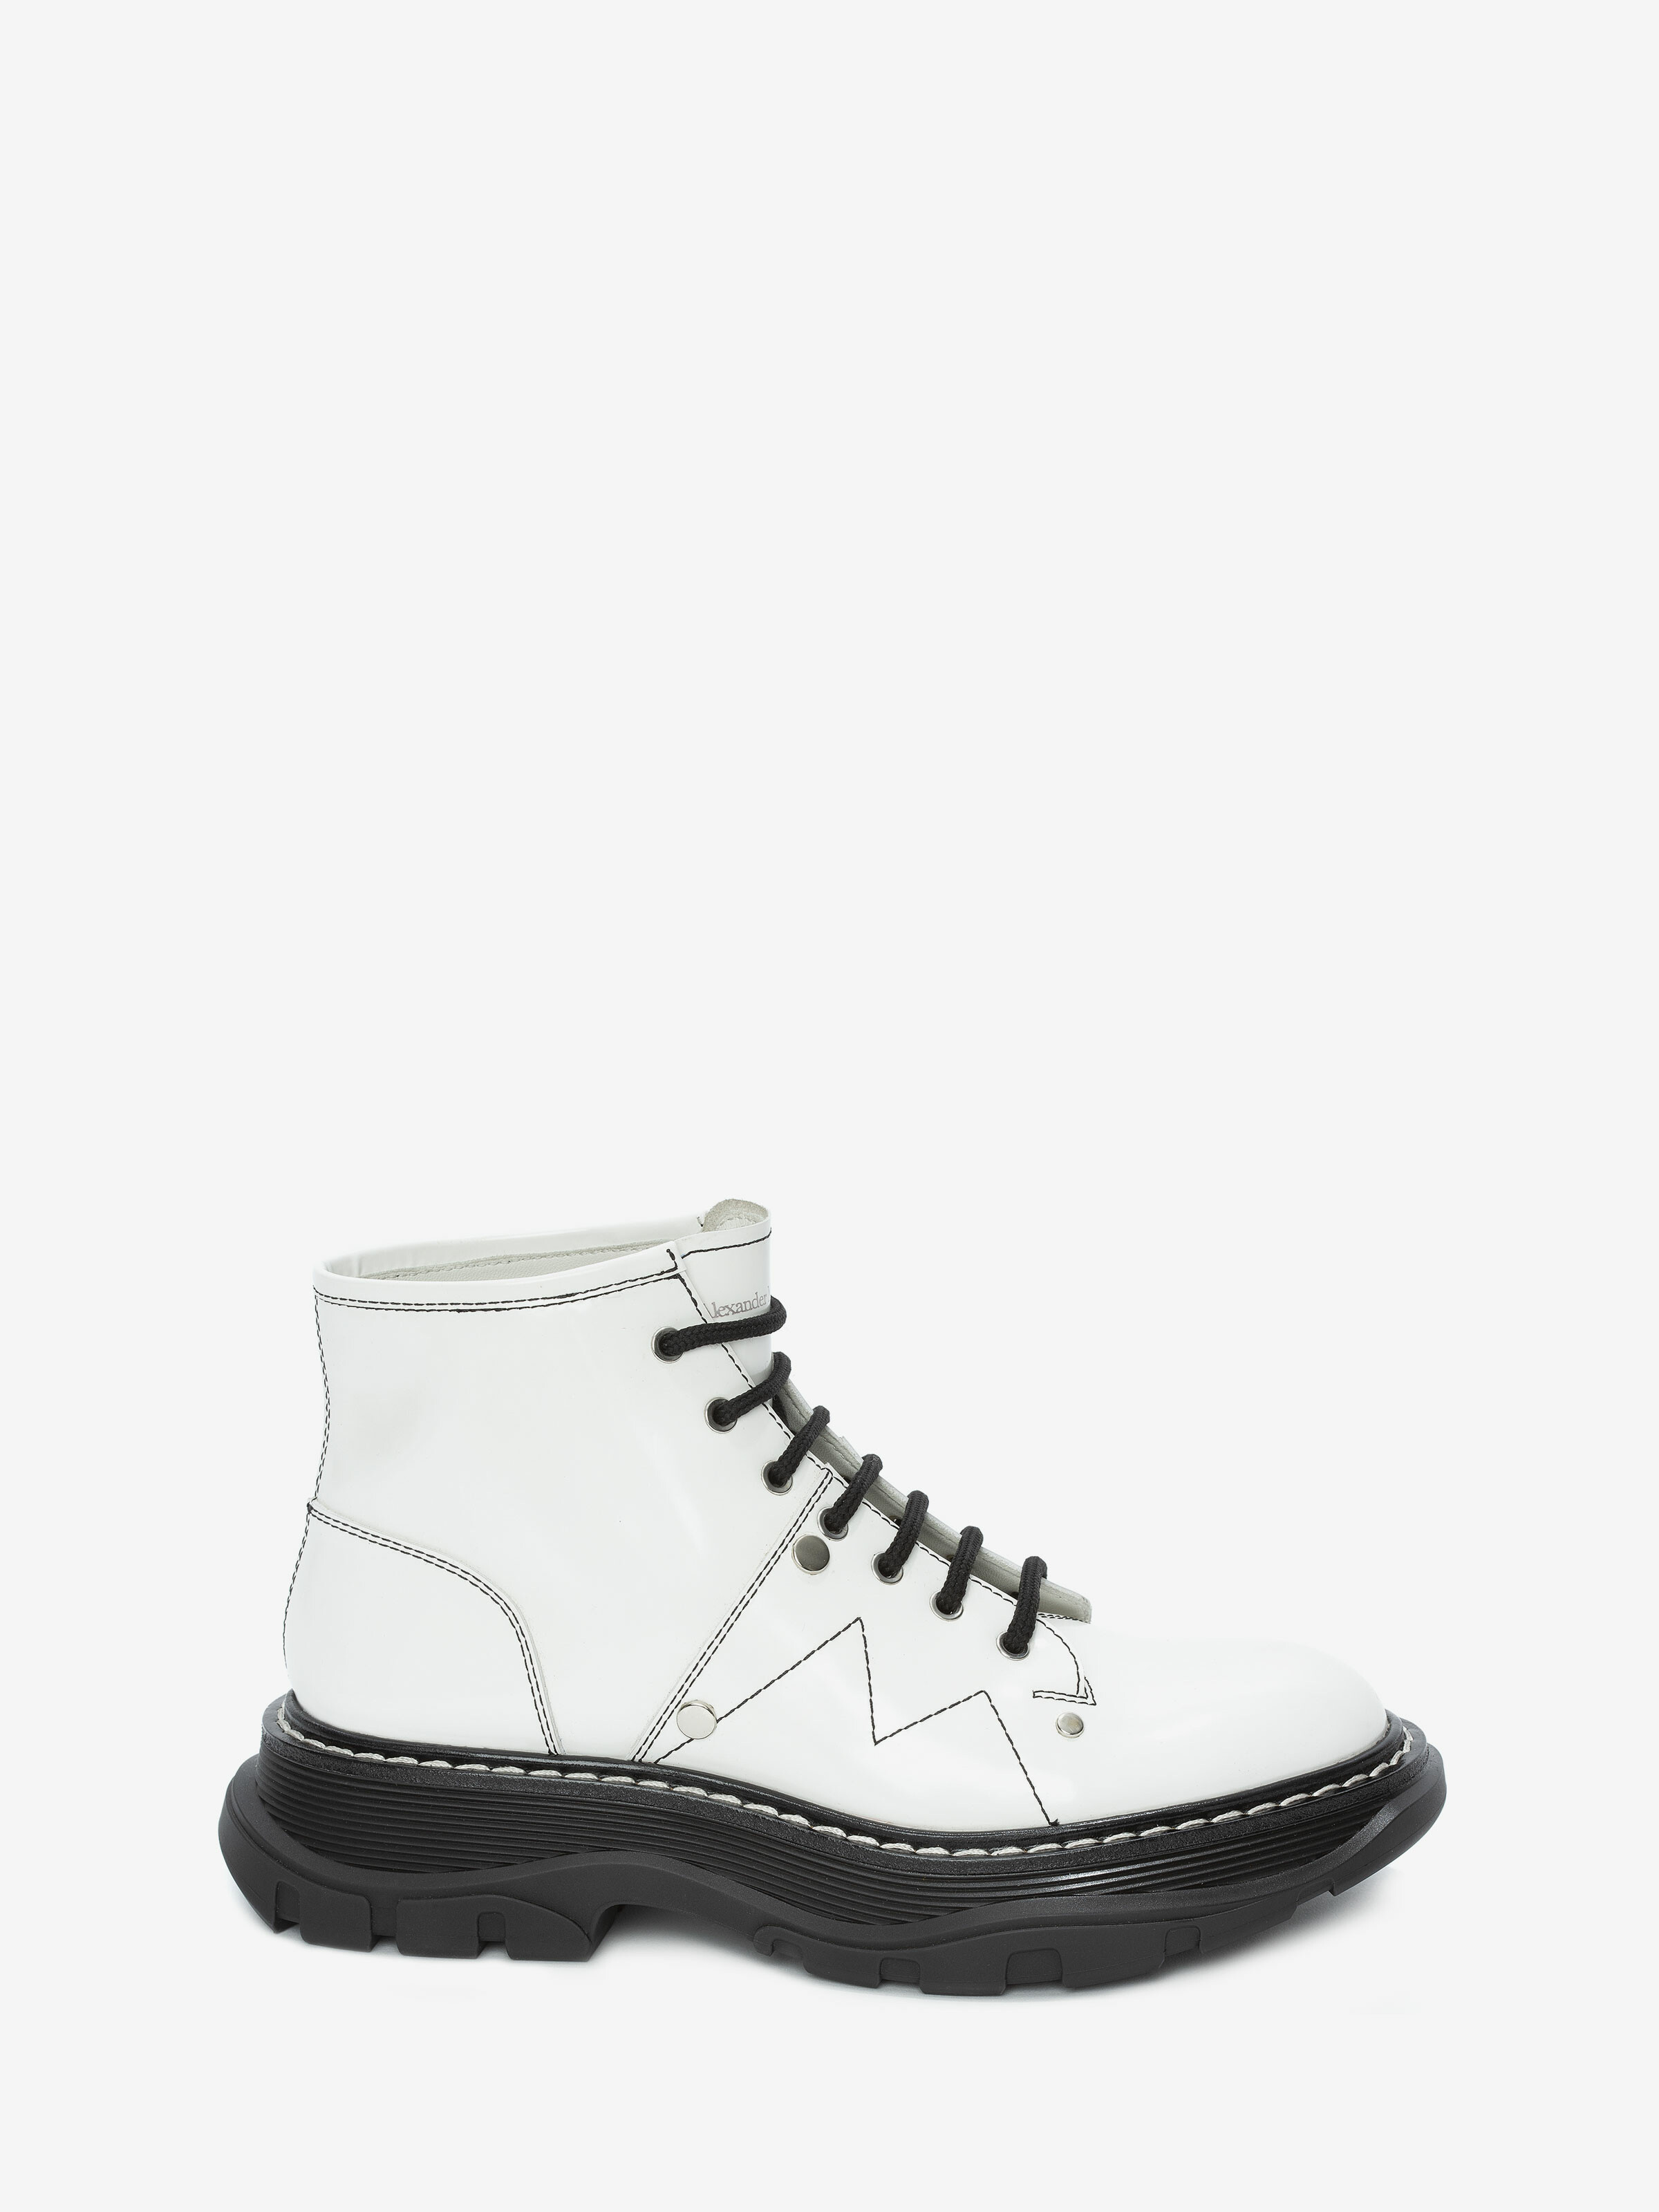 Alexander Mcqueen White Leather Ankle